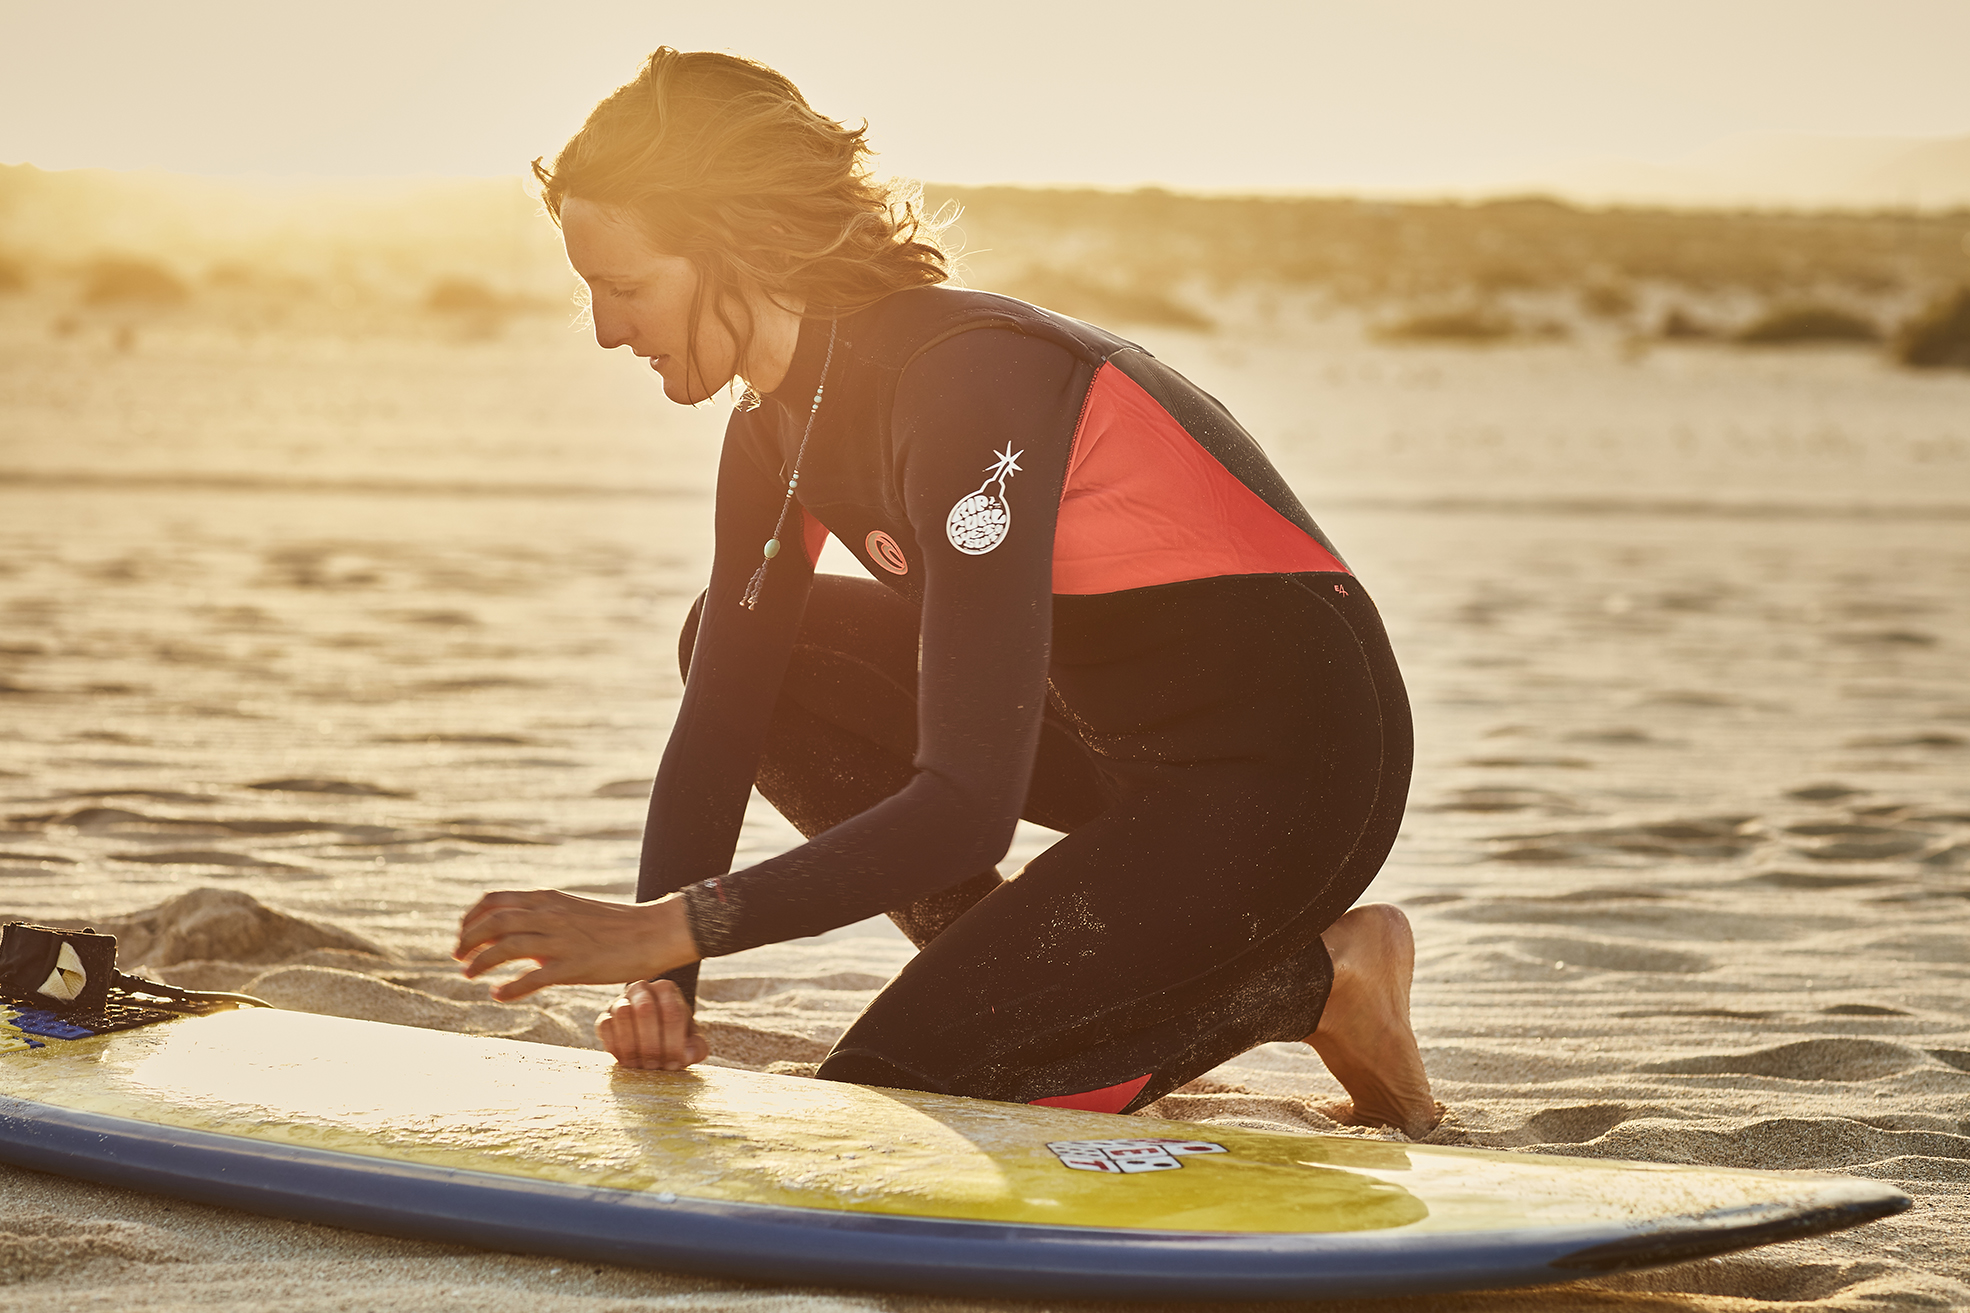 female surfer waxing her board at sunset